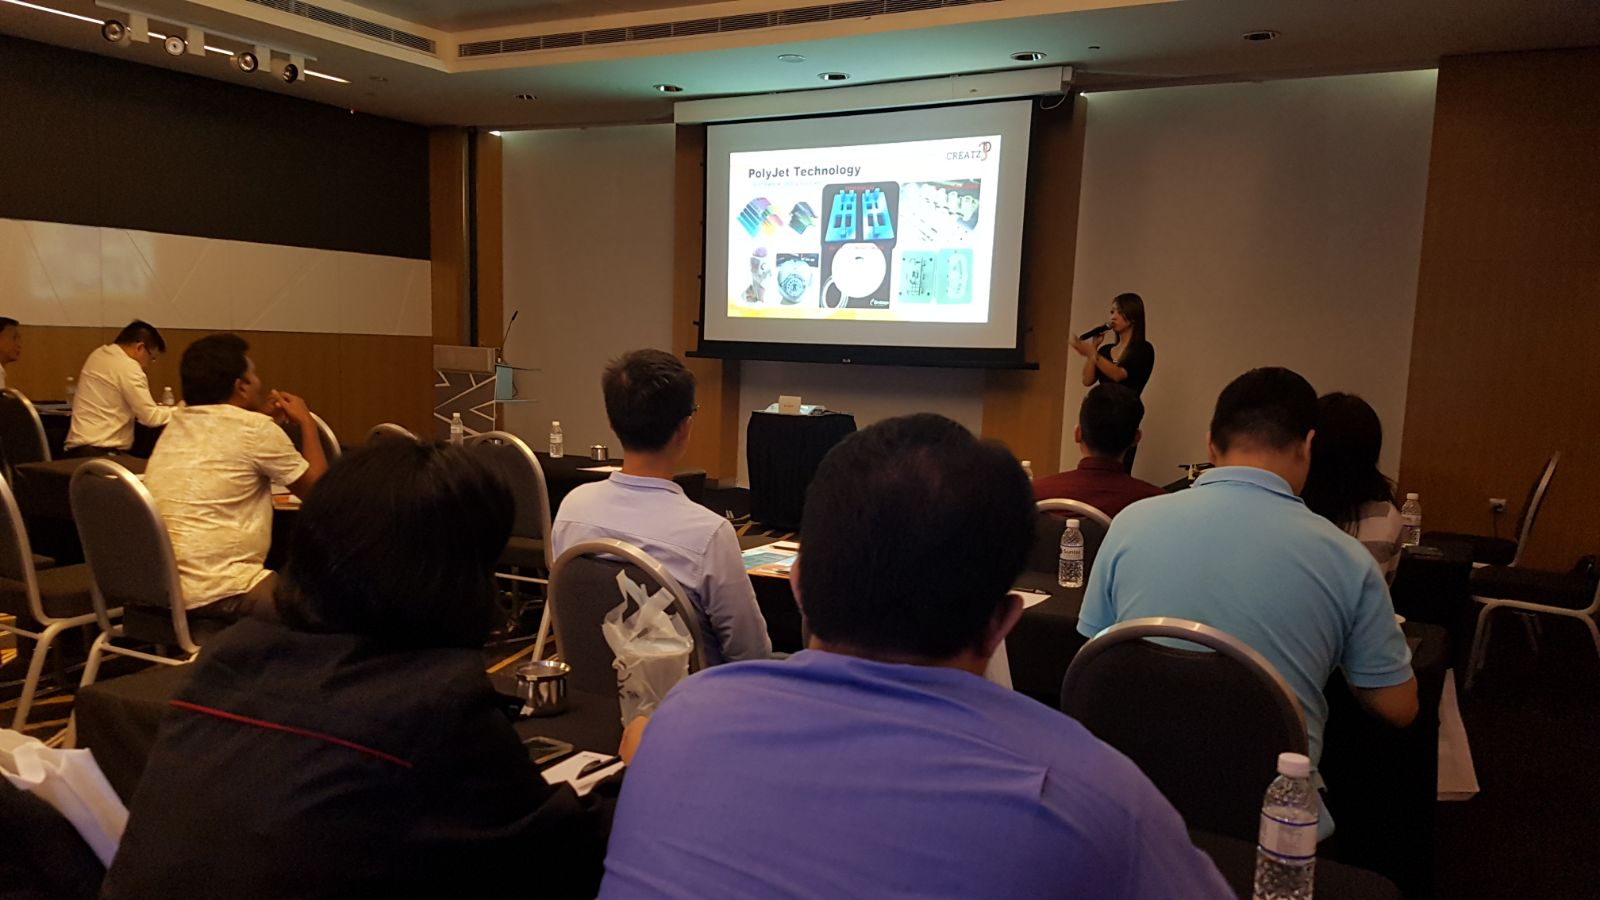 Ms. Sally Chuen presenting on how Additive Manufacturing has moved beyond prototyping